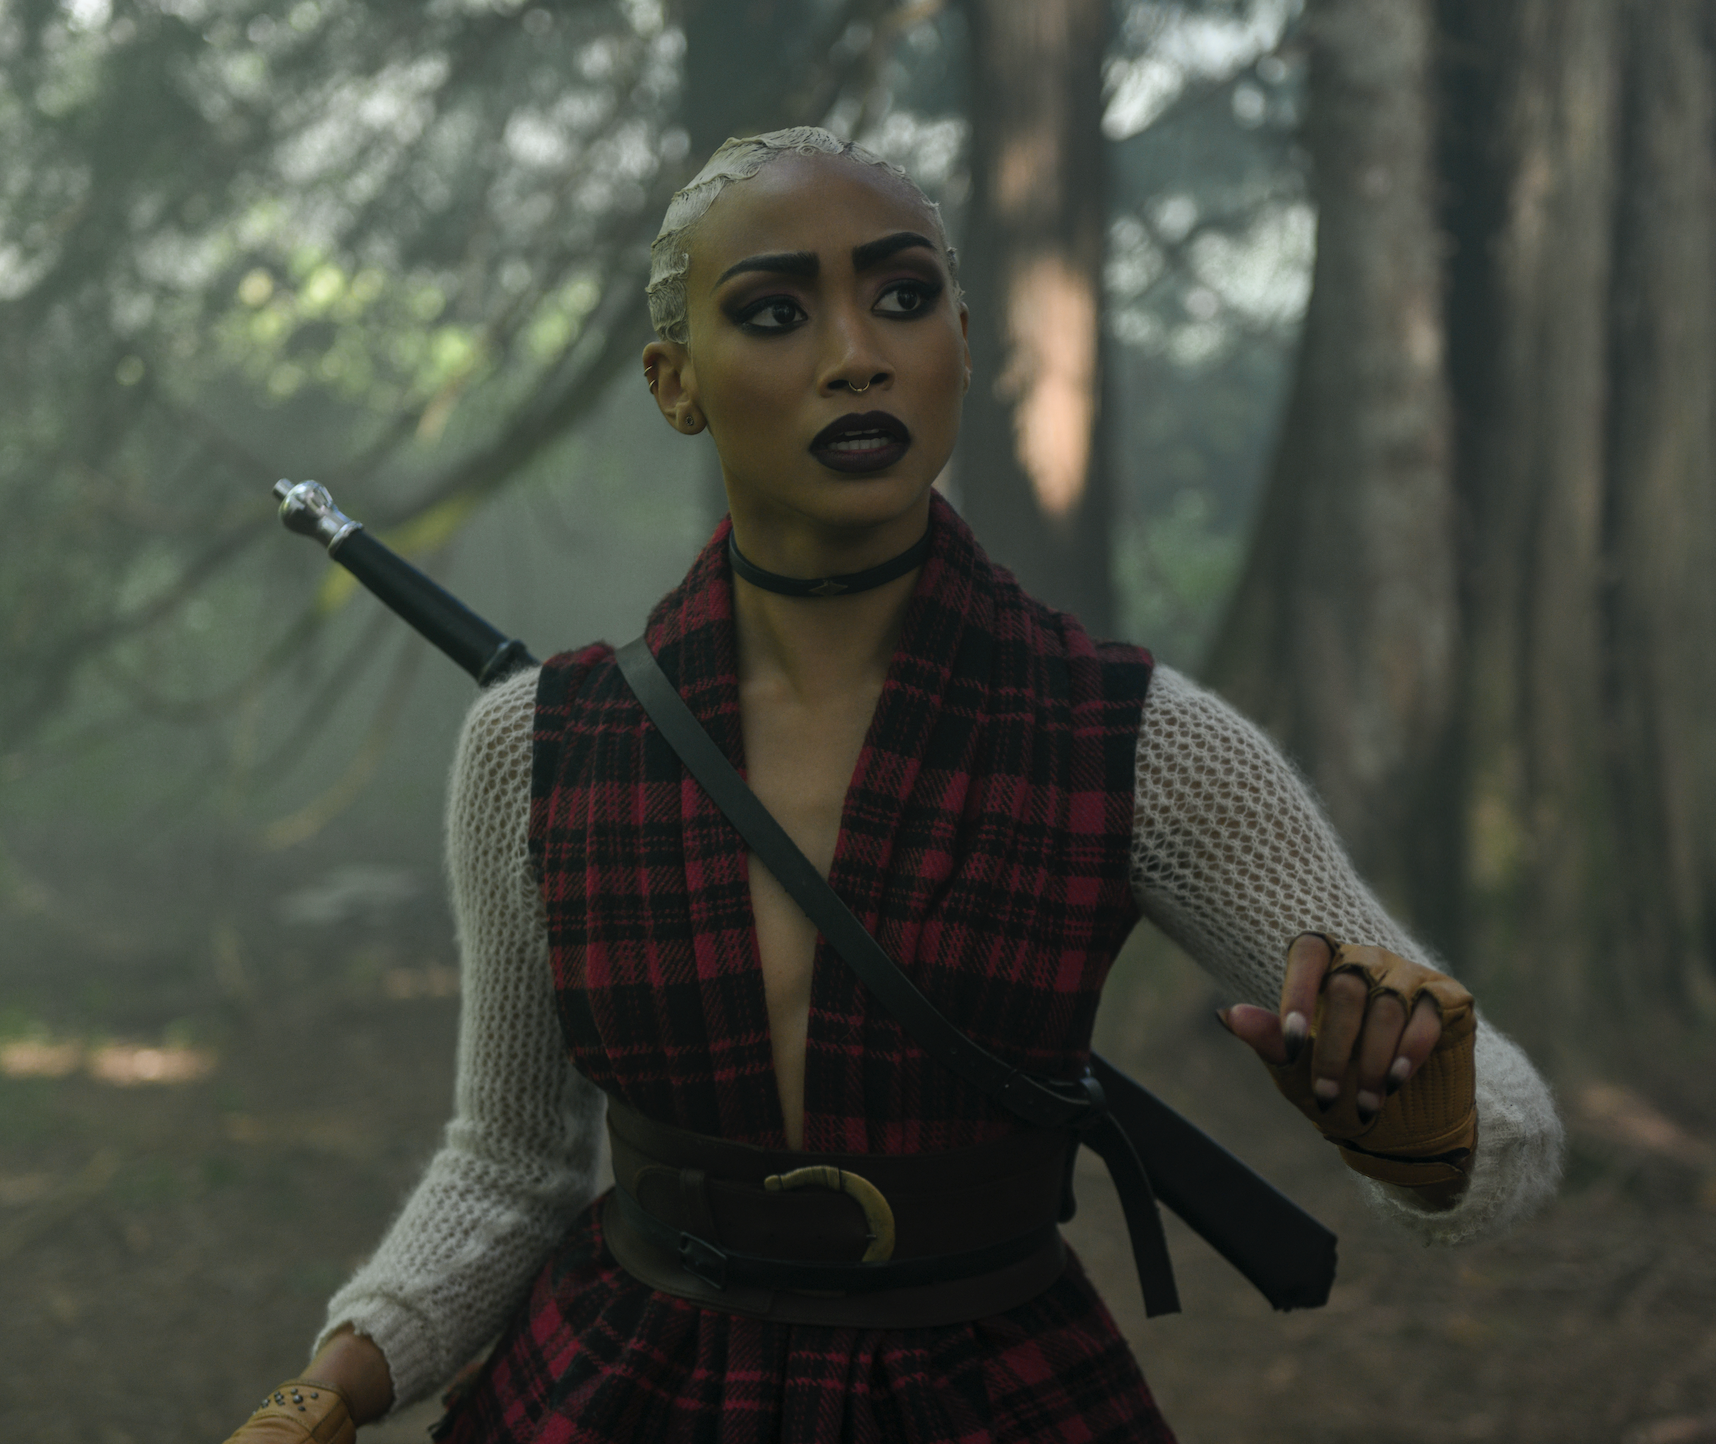 Prudence wearing a deep-neck plaid top with a thick belt around her waist and a leather choker